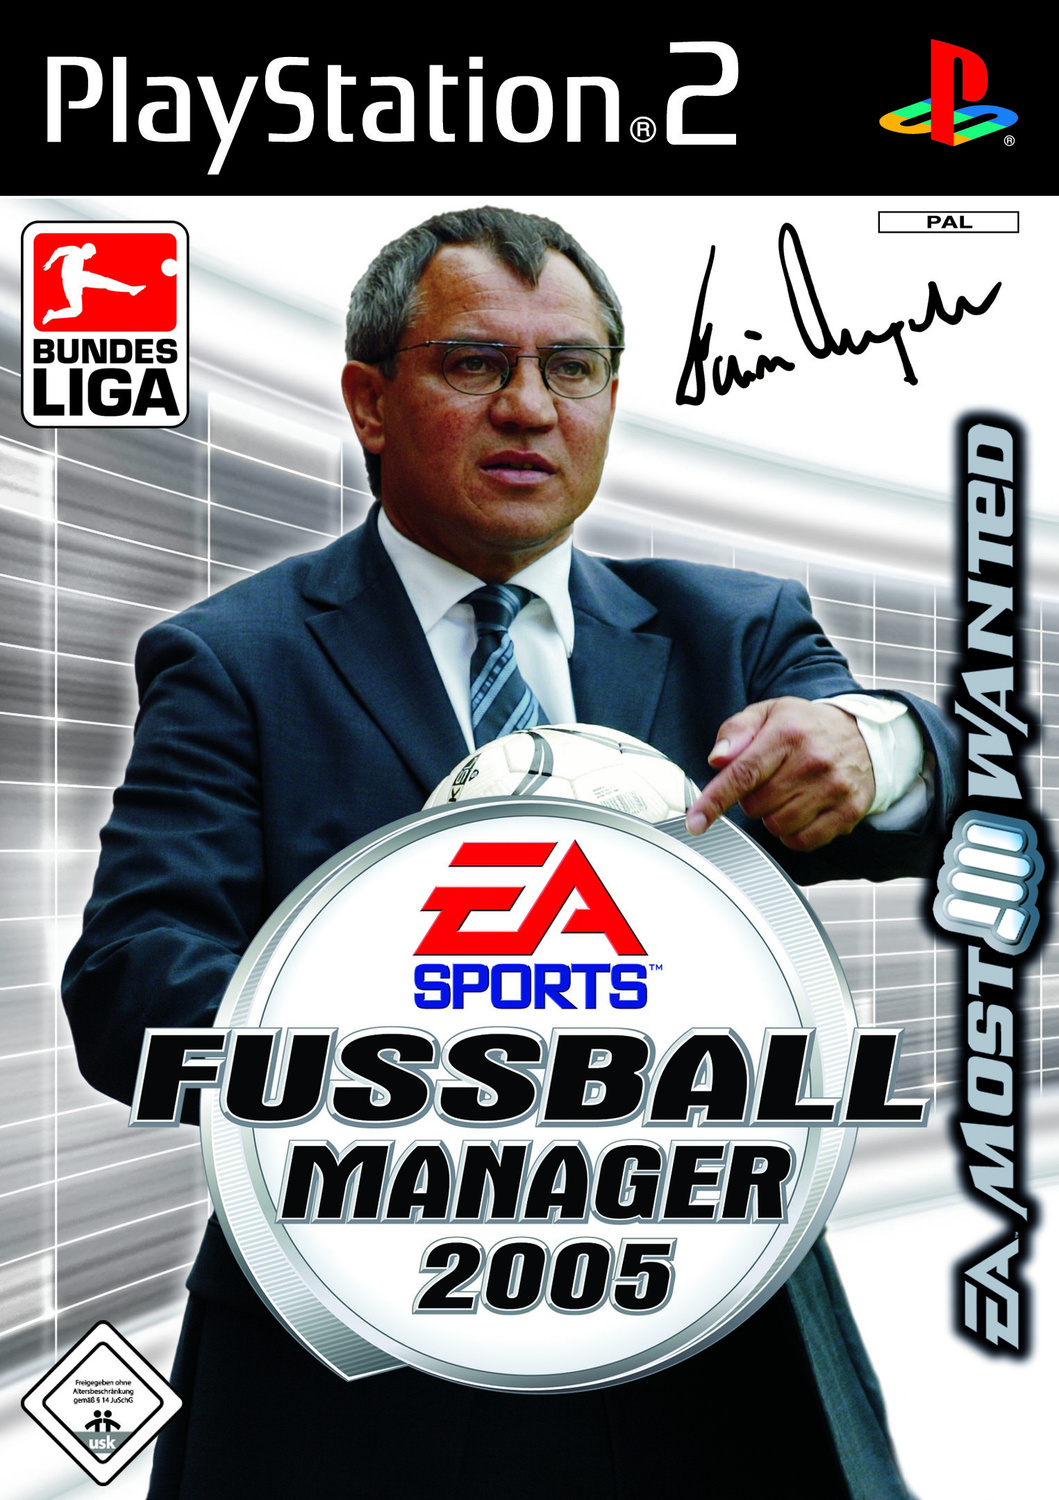 Fußball Manager 2005 EA Sports